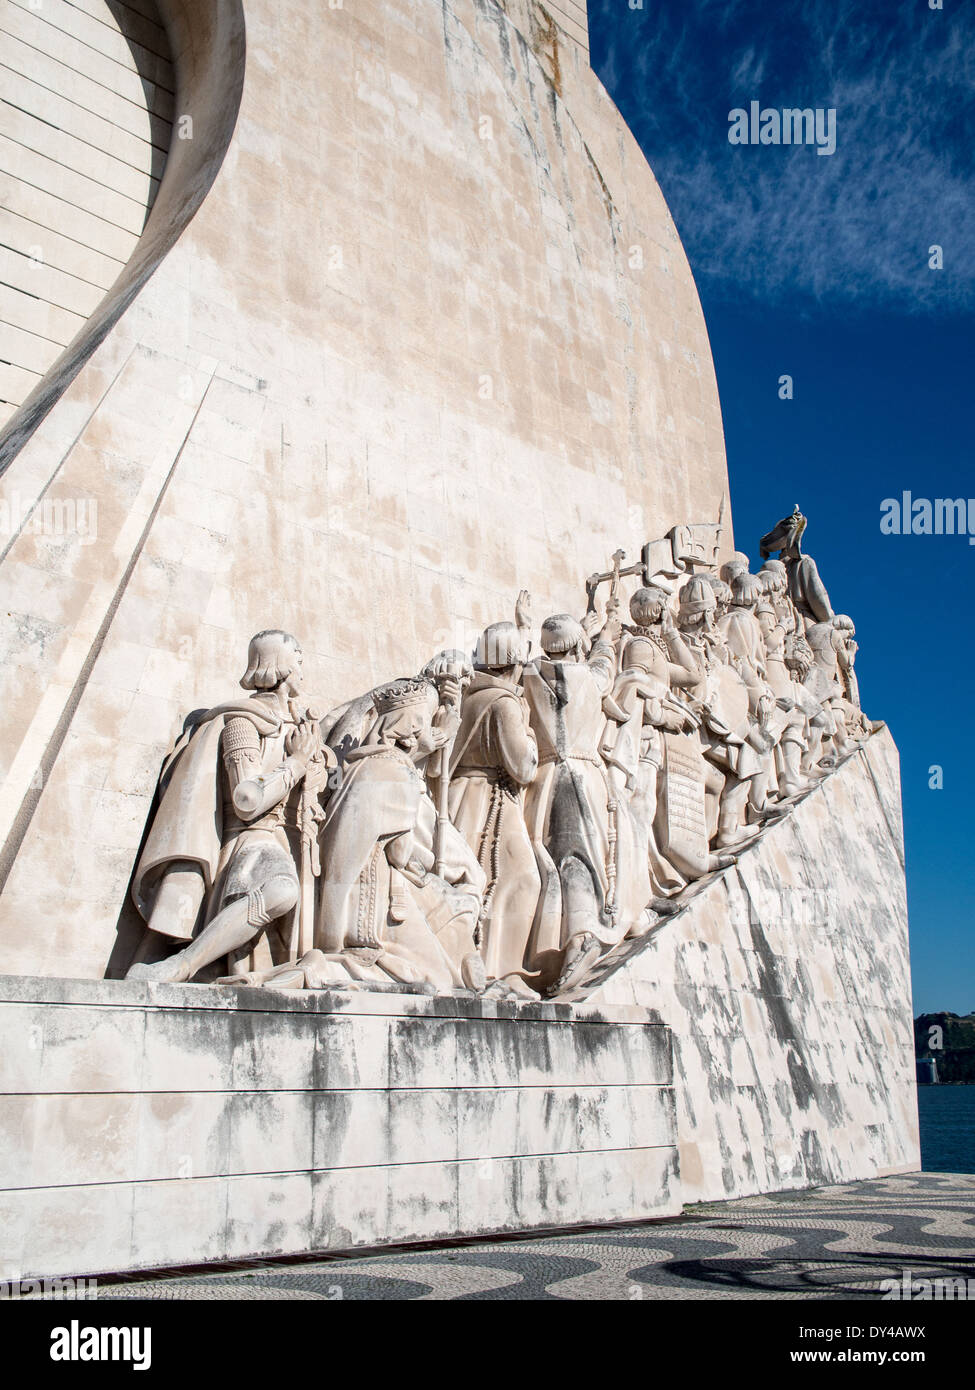 Discoveries Monument, Belem , Portugal - Stock Image